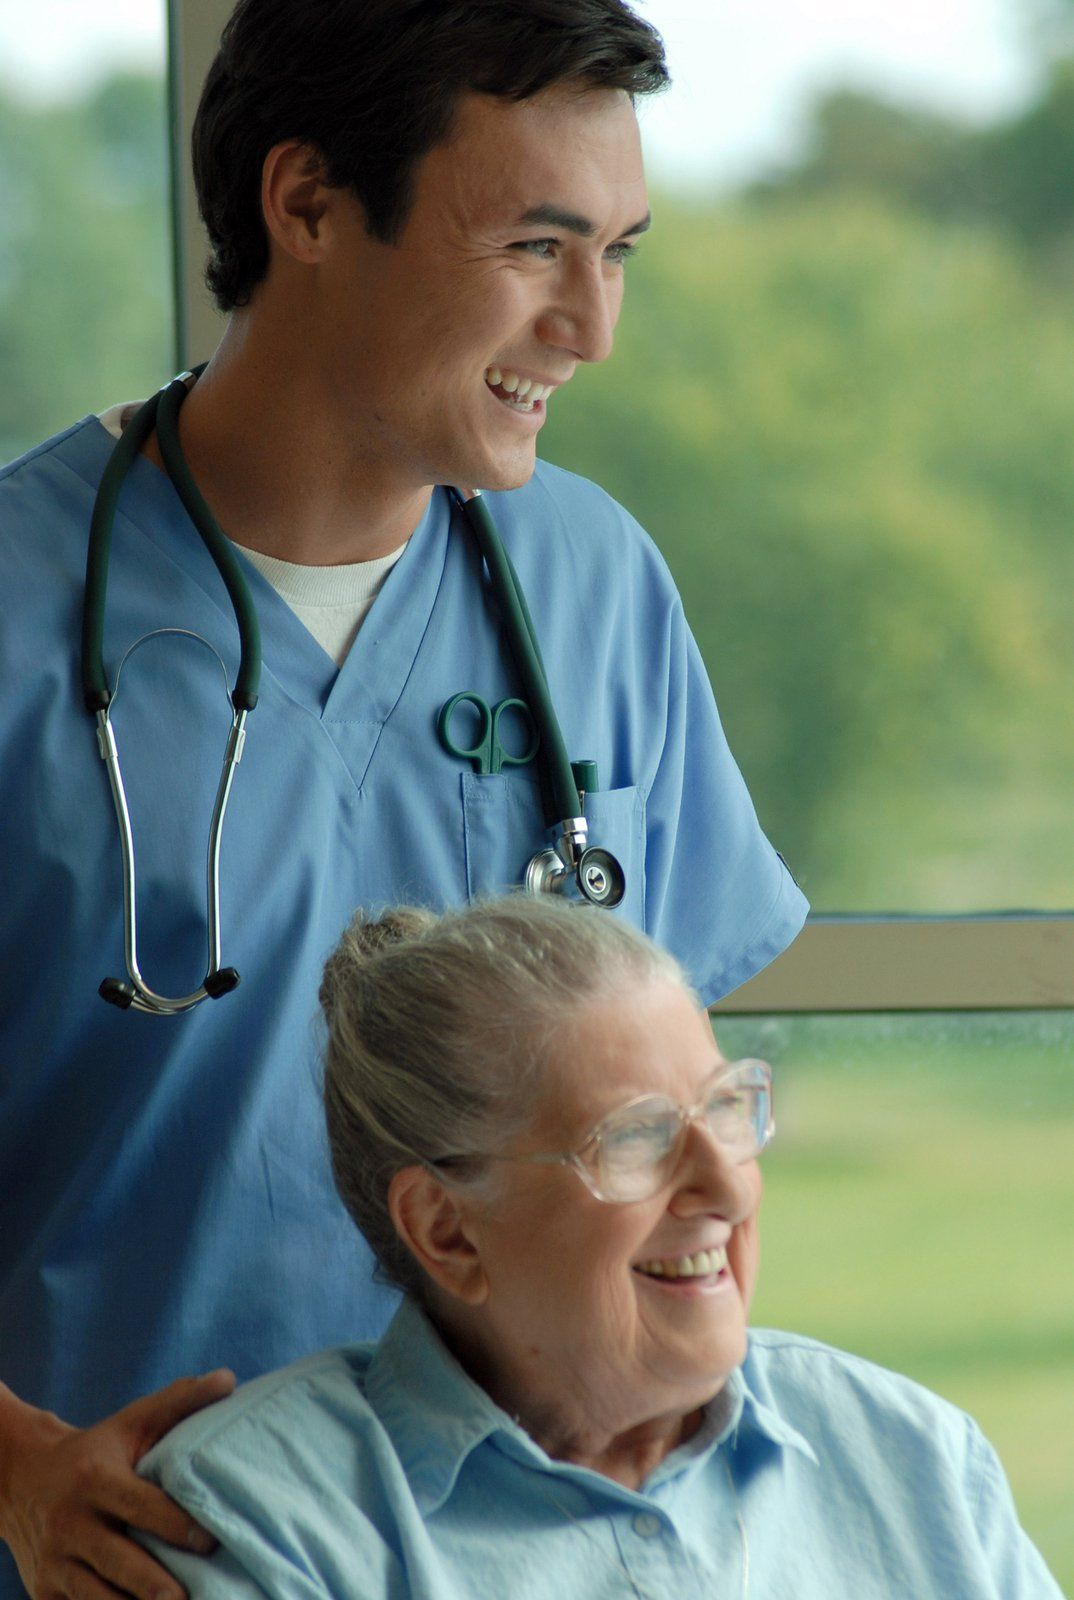 A Prospective Nurse Aide Must Enroll In An Approved Nurse Aide